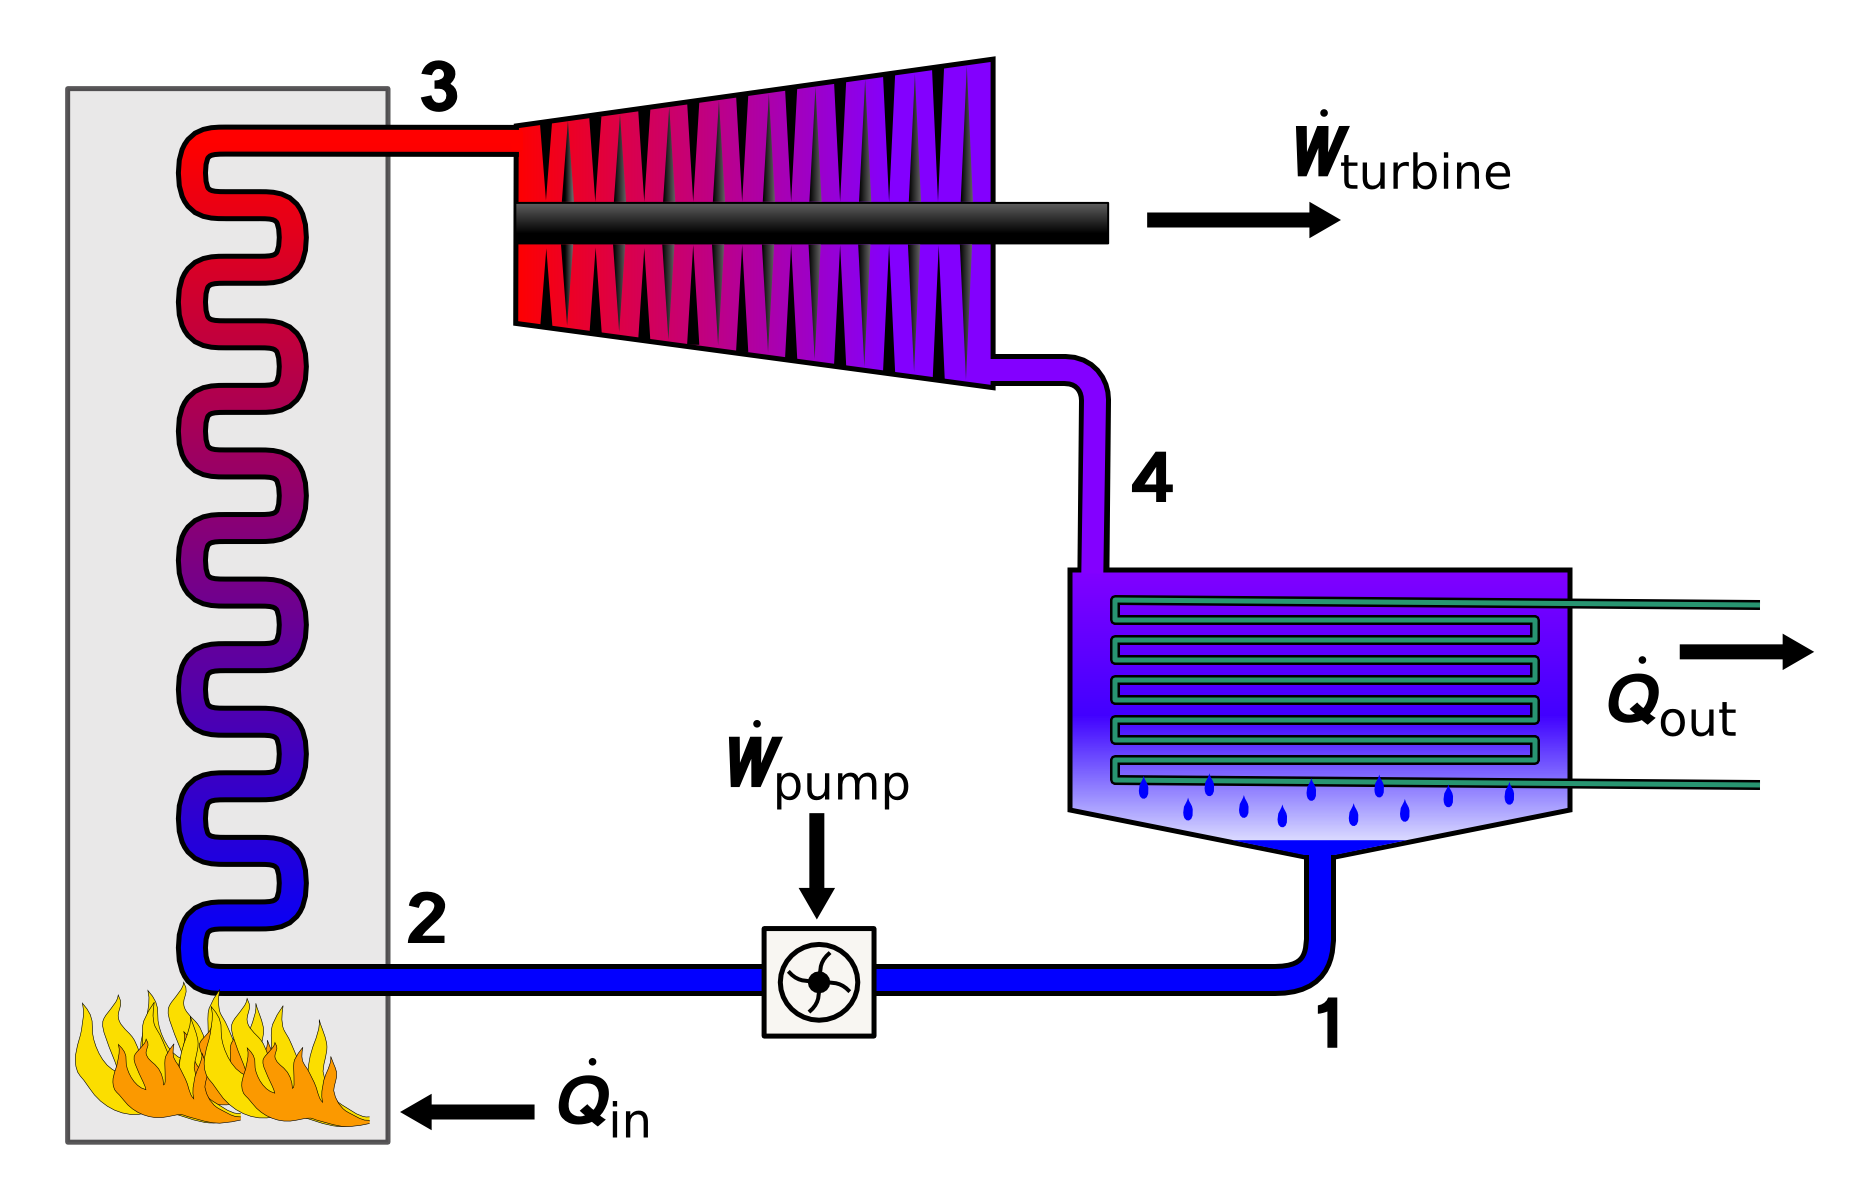 Heat vector vapour. File rankine cycle layout